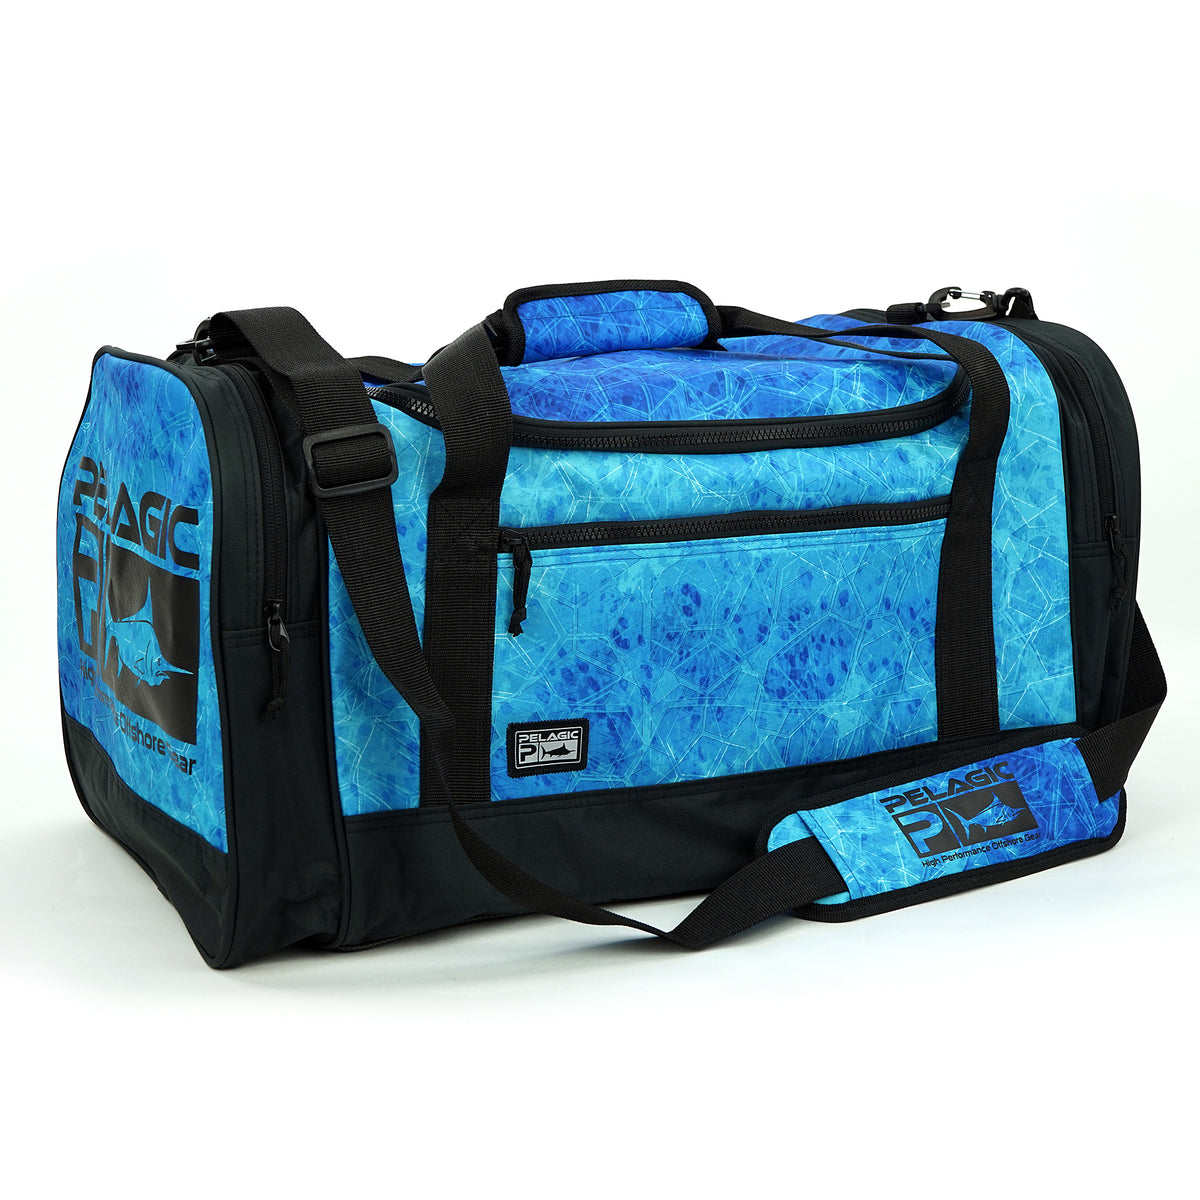 Pelagic Duffel Bag Big Image - 1